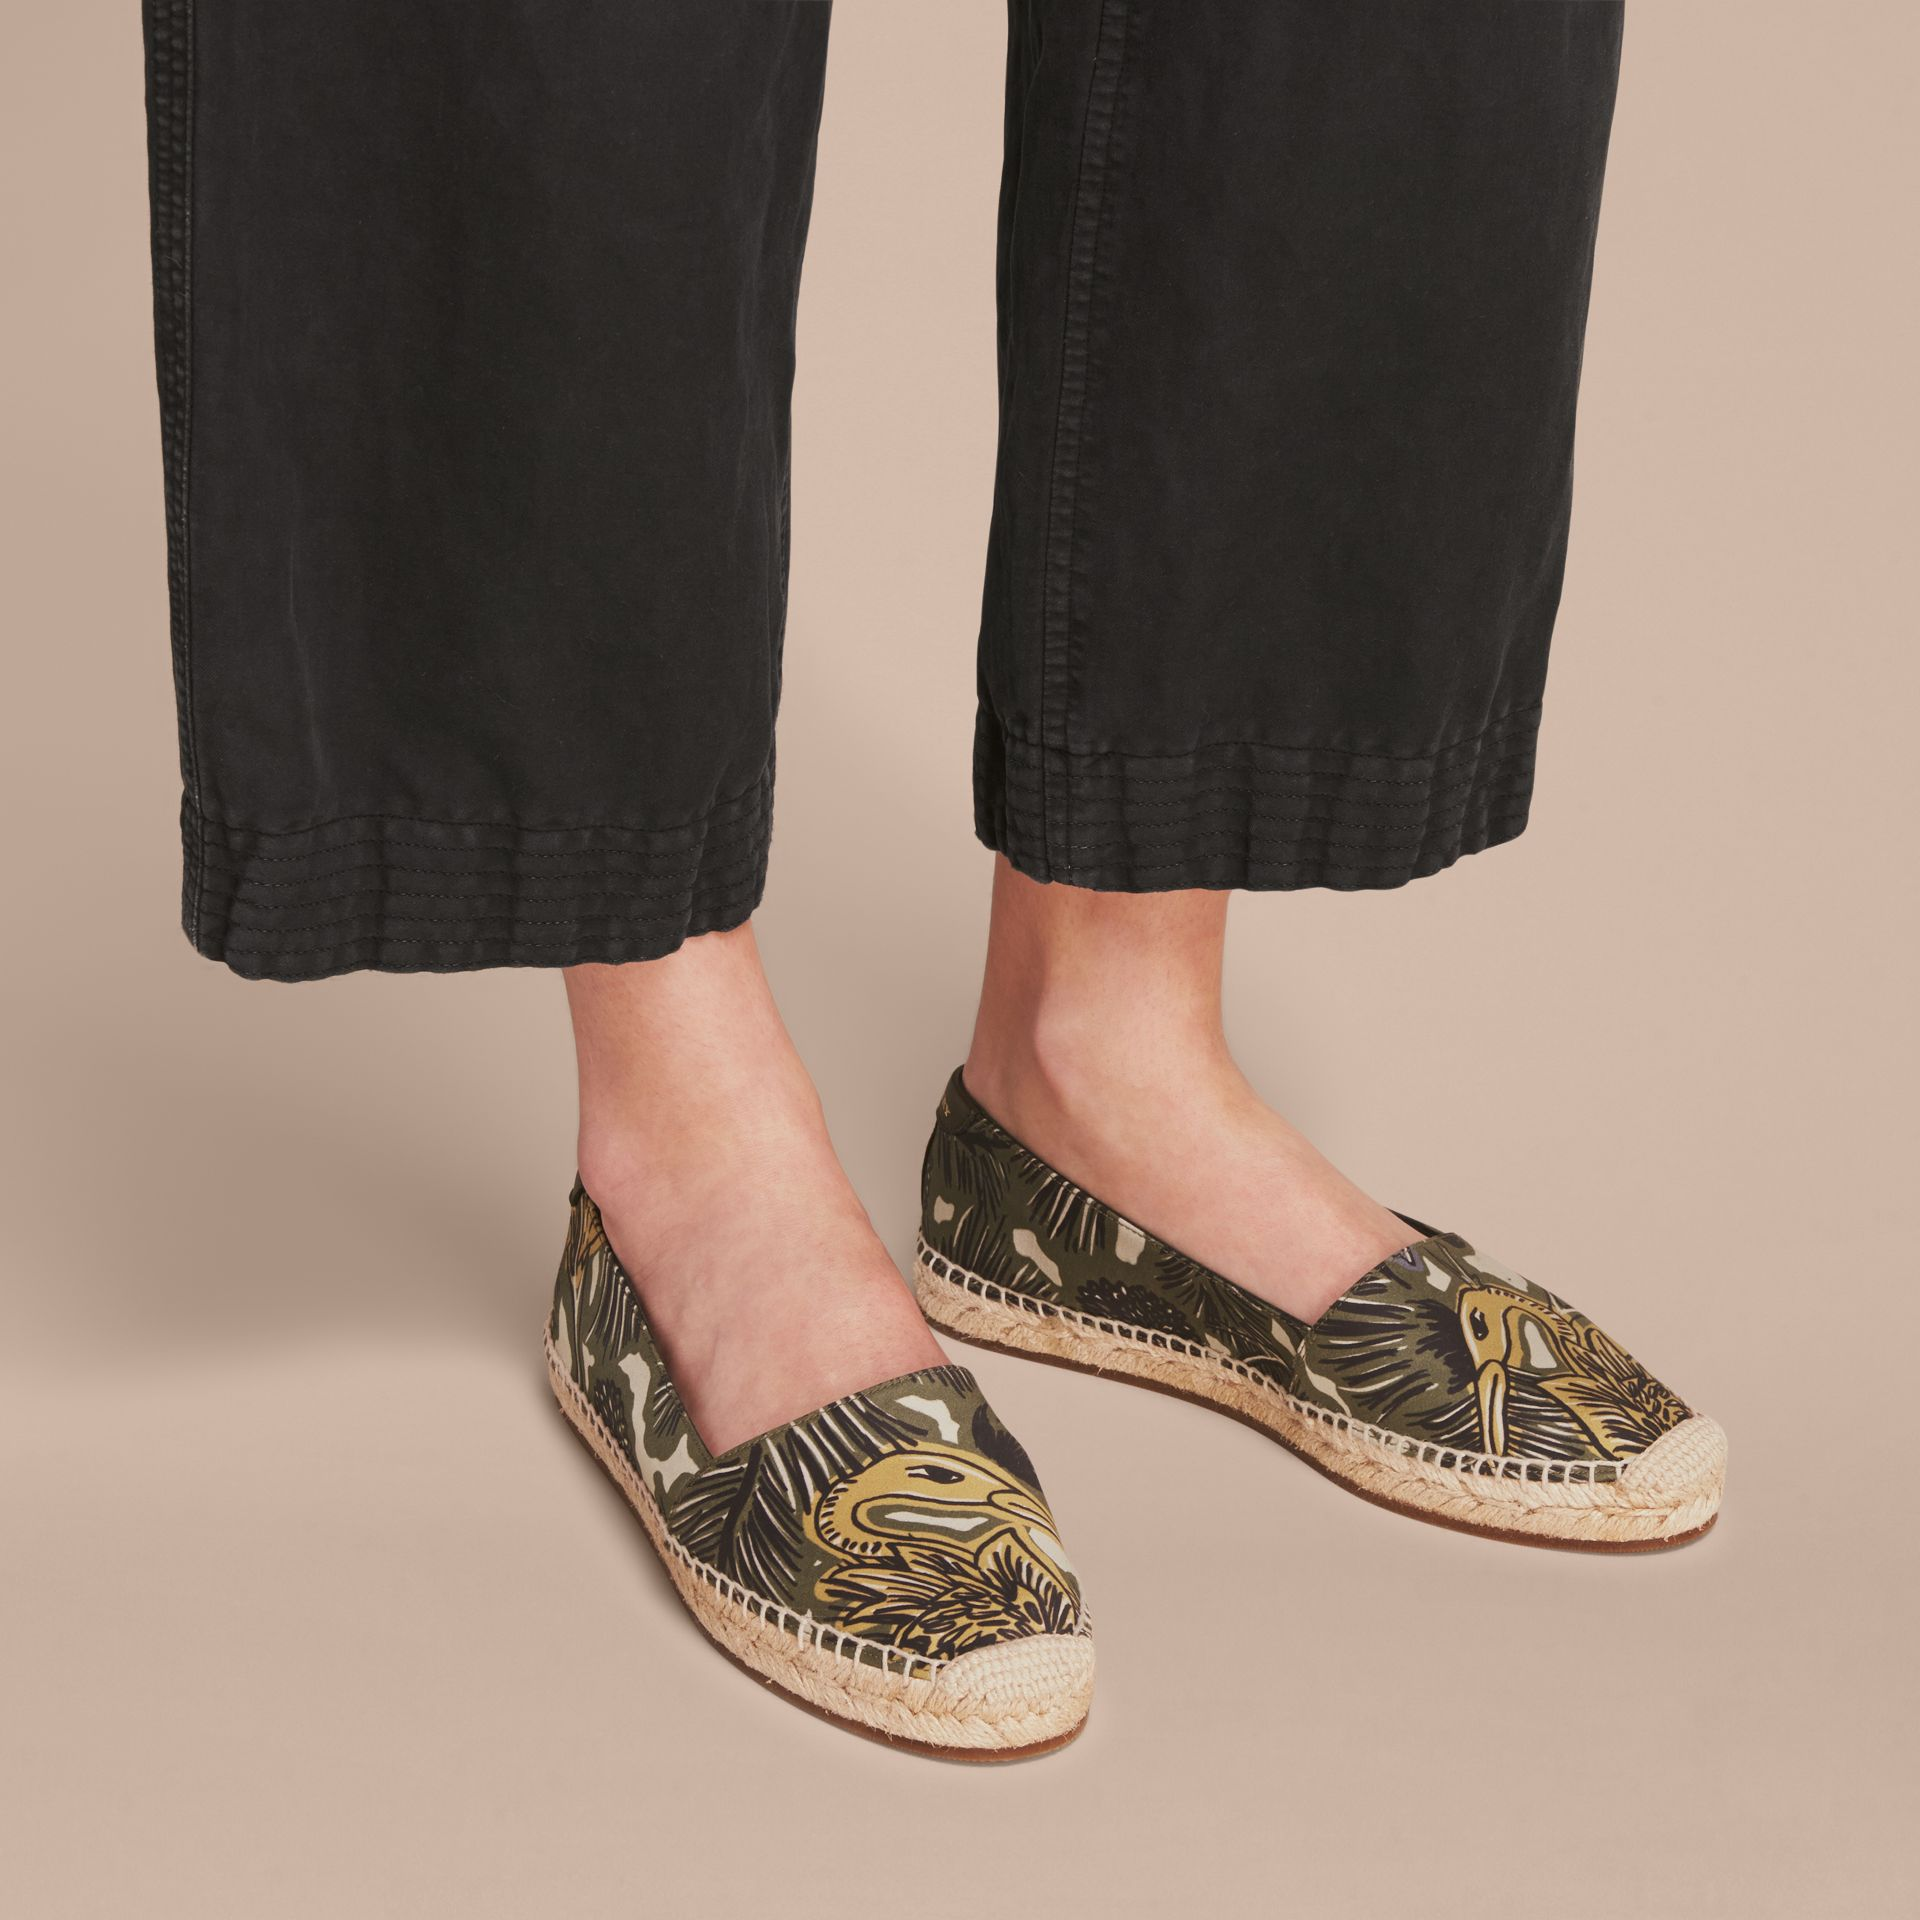 Beasts Print Cotton Blend Espadrilles in Clay Green - Women | Burberry United Kingdom - gallery image 3